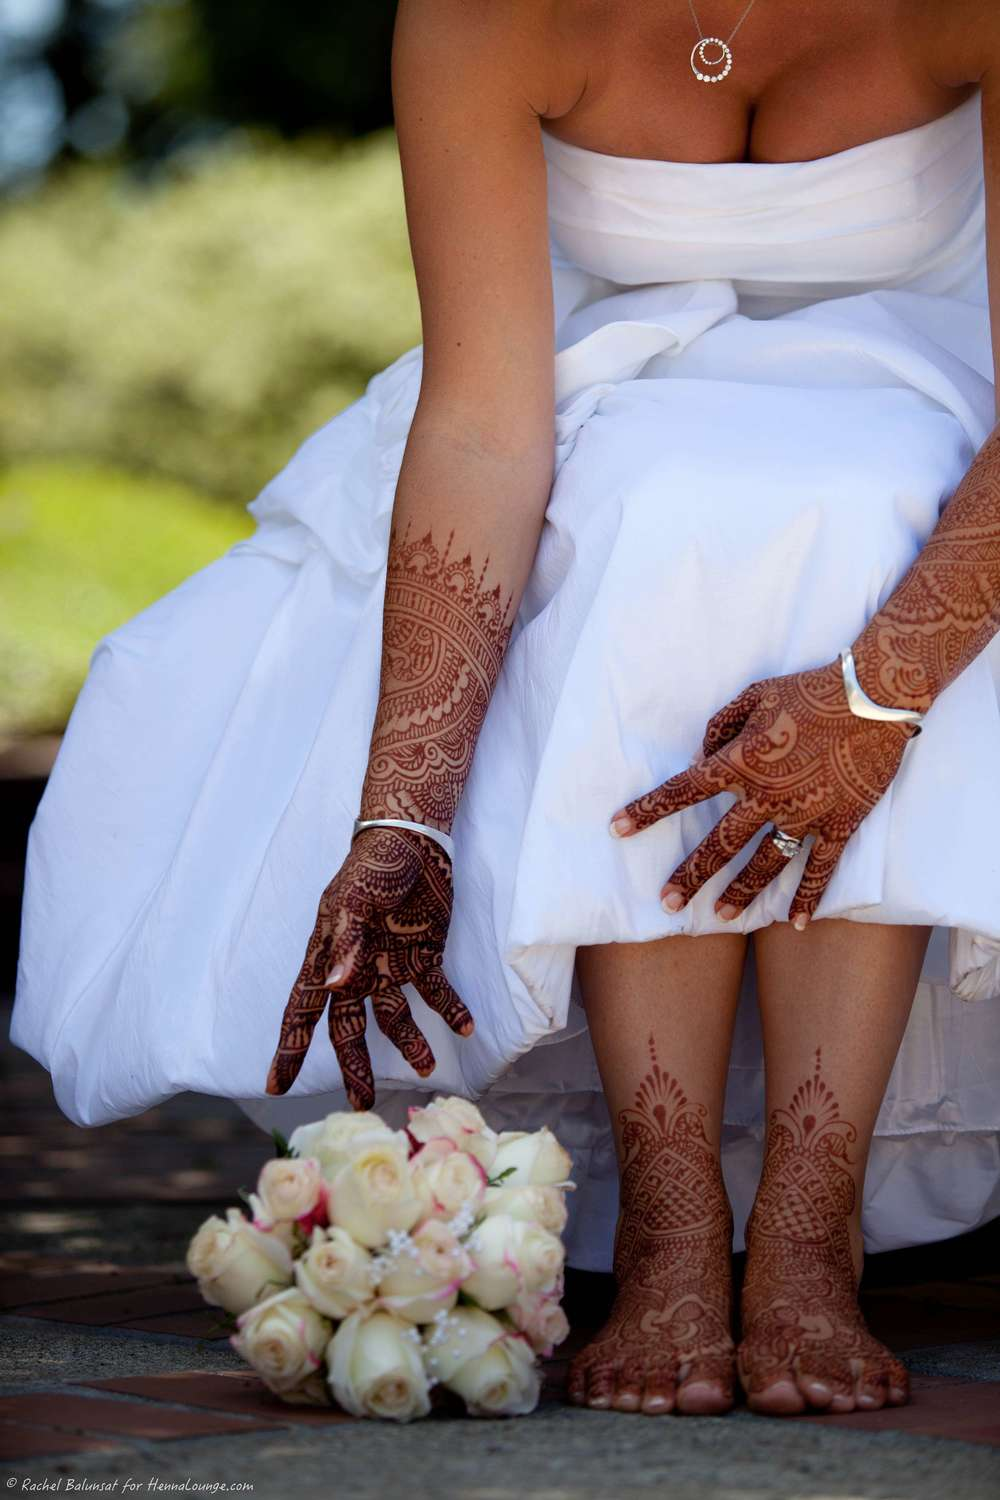 A great example of a very rich henna stain. Patience really pays off! Photo by Rachel Balunsat and henna by http://www.hennalounge.com